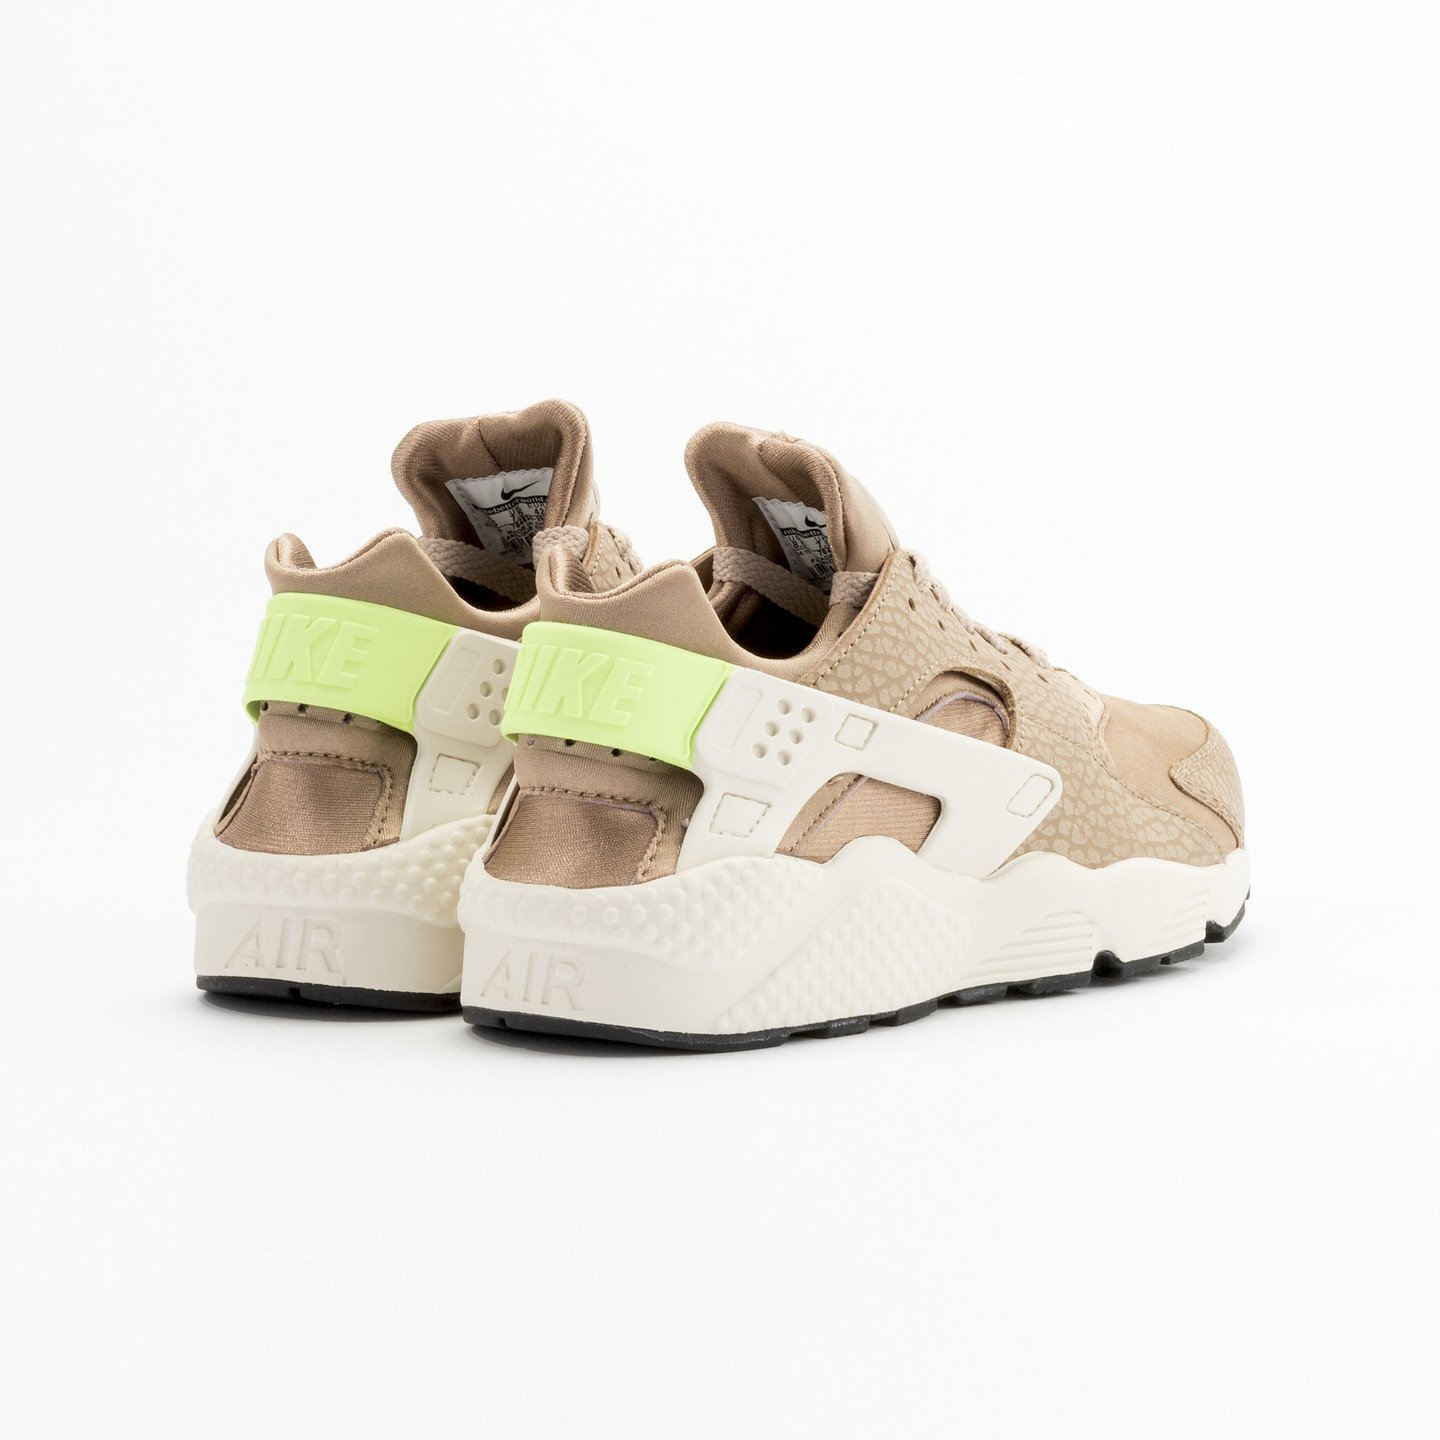 Nike Air Huarache Run Premium Desert Camo / Sea Glass / Ghost Green 704830-203-43